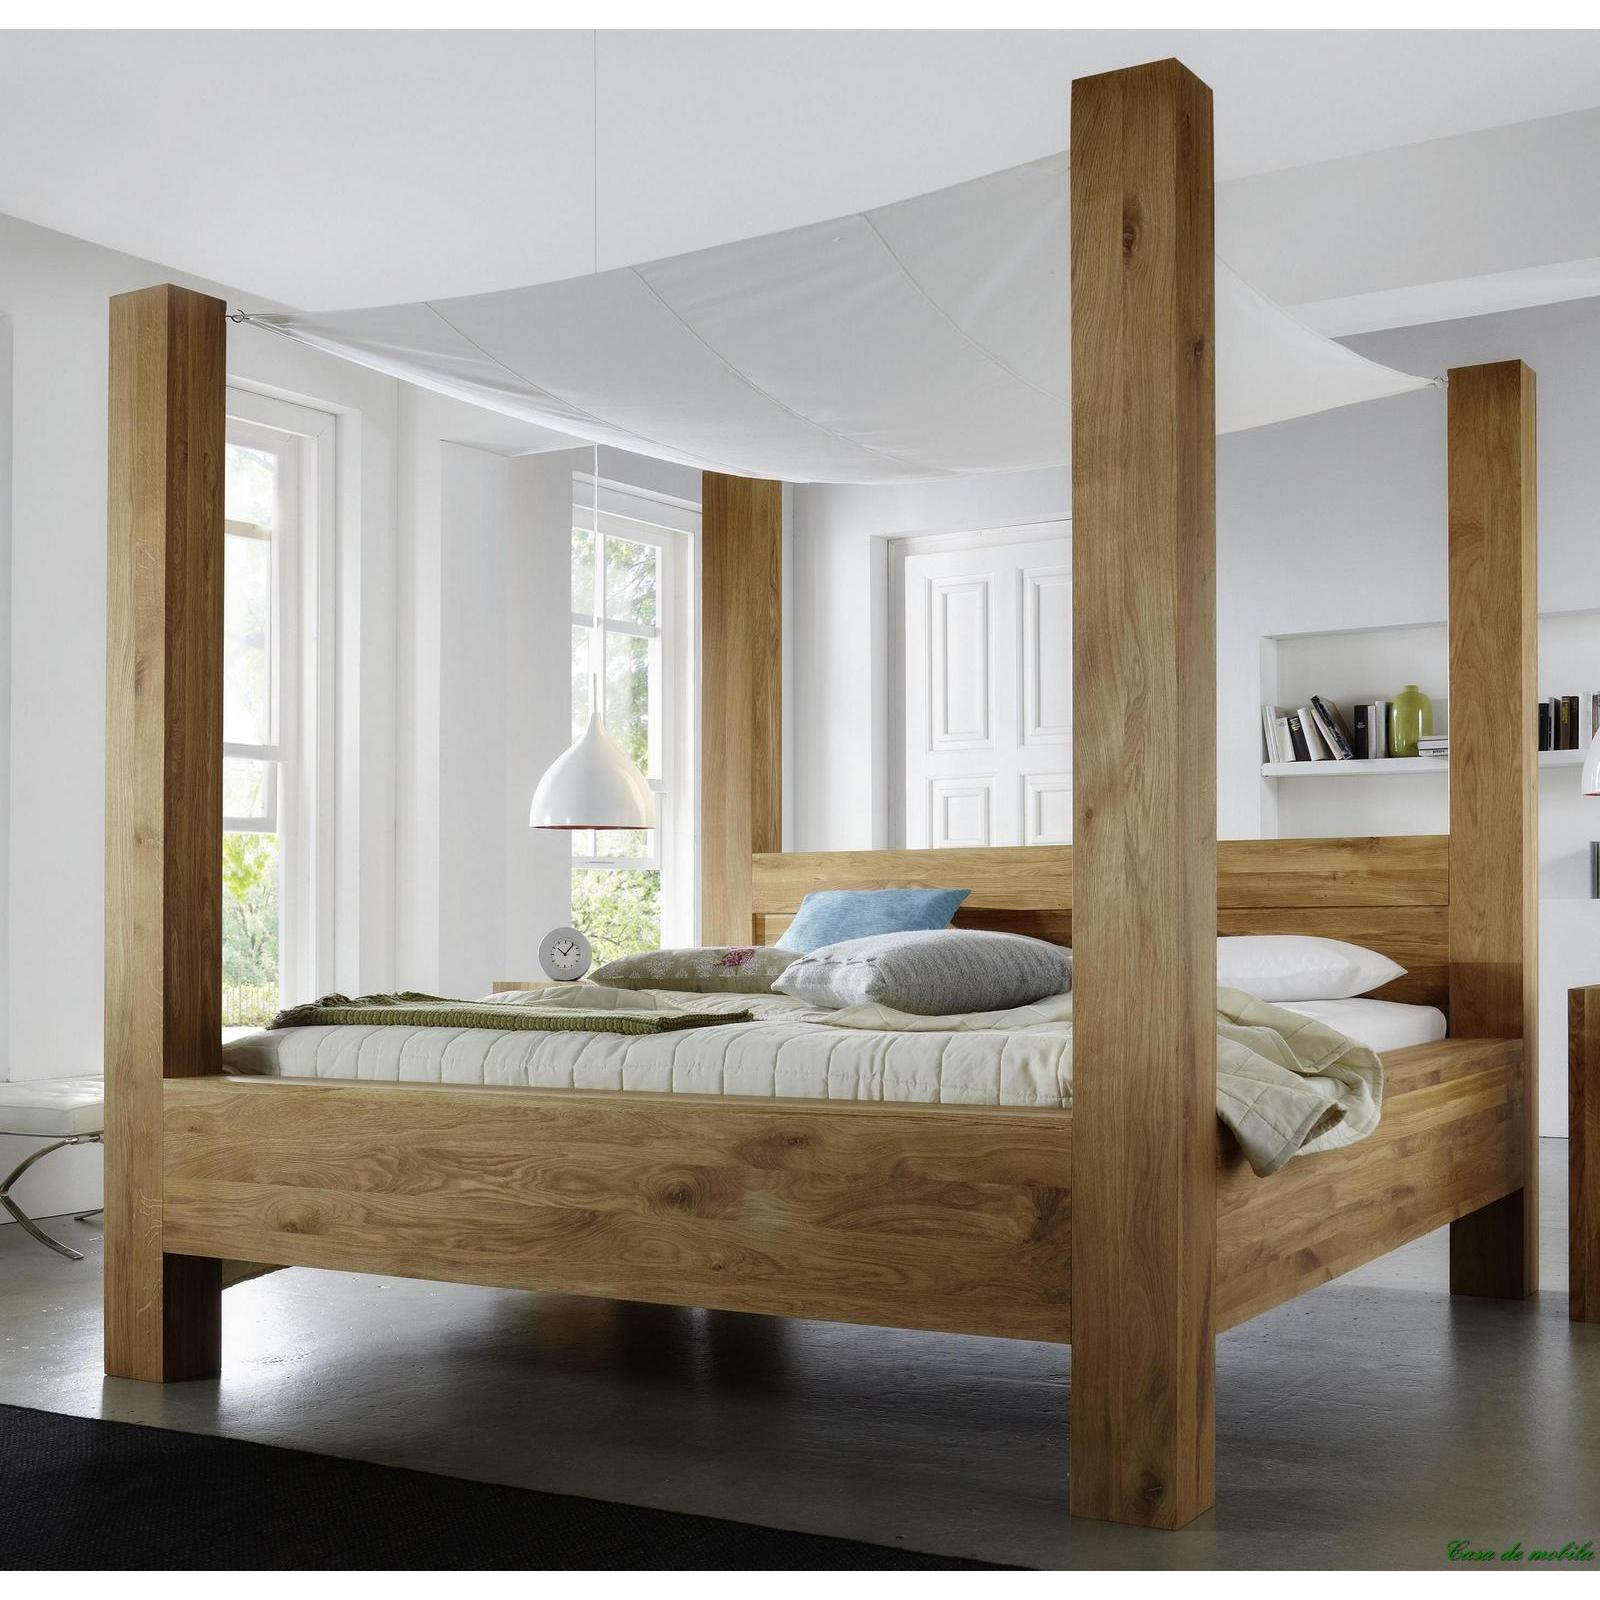 himmelbett holz 180x200 traumhaftes luxus himmelbett aus massiven akazien holz bett mit stoff. Black Bedroom Furniture Sets. Home Design Ideas